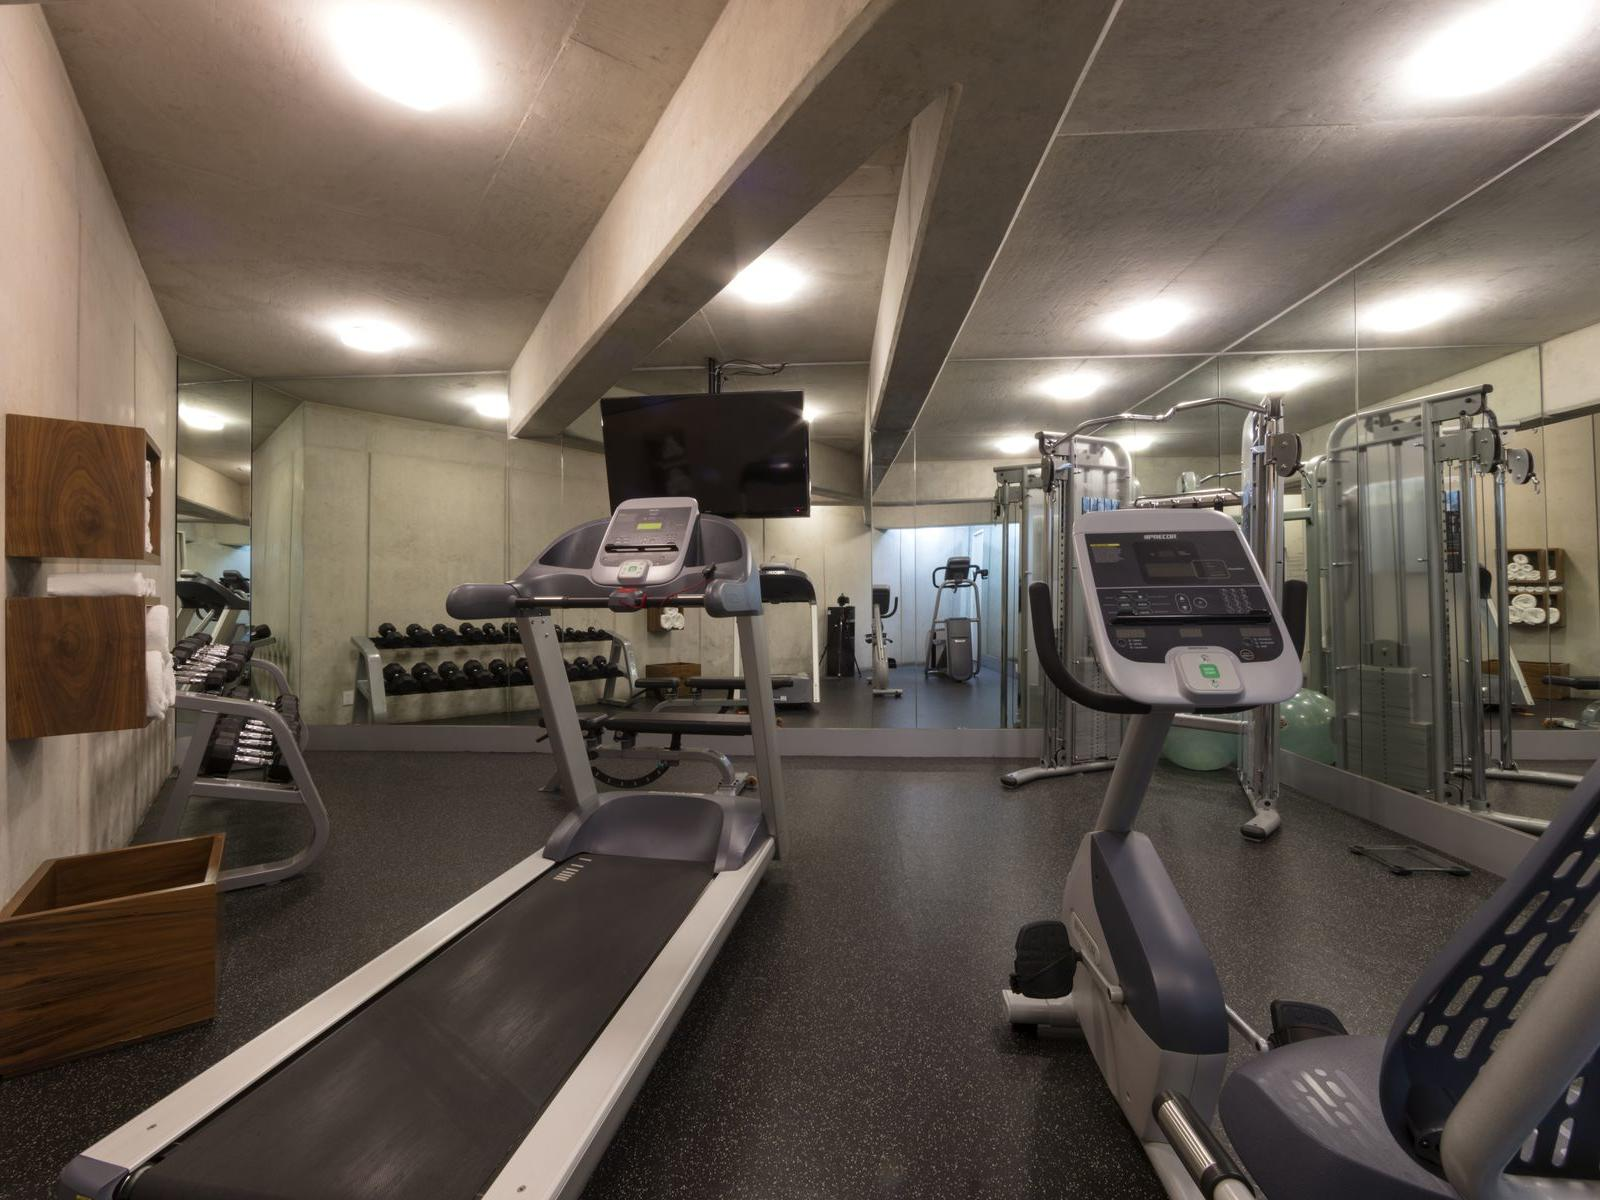 fitness center with treadmill and cardio machine